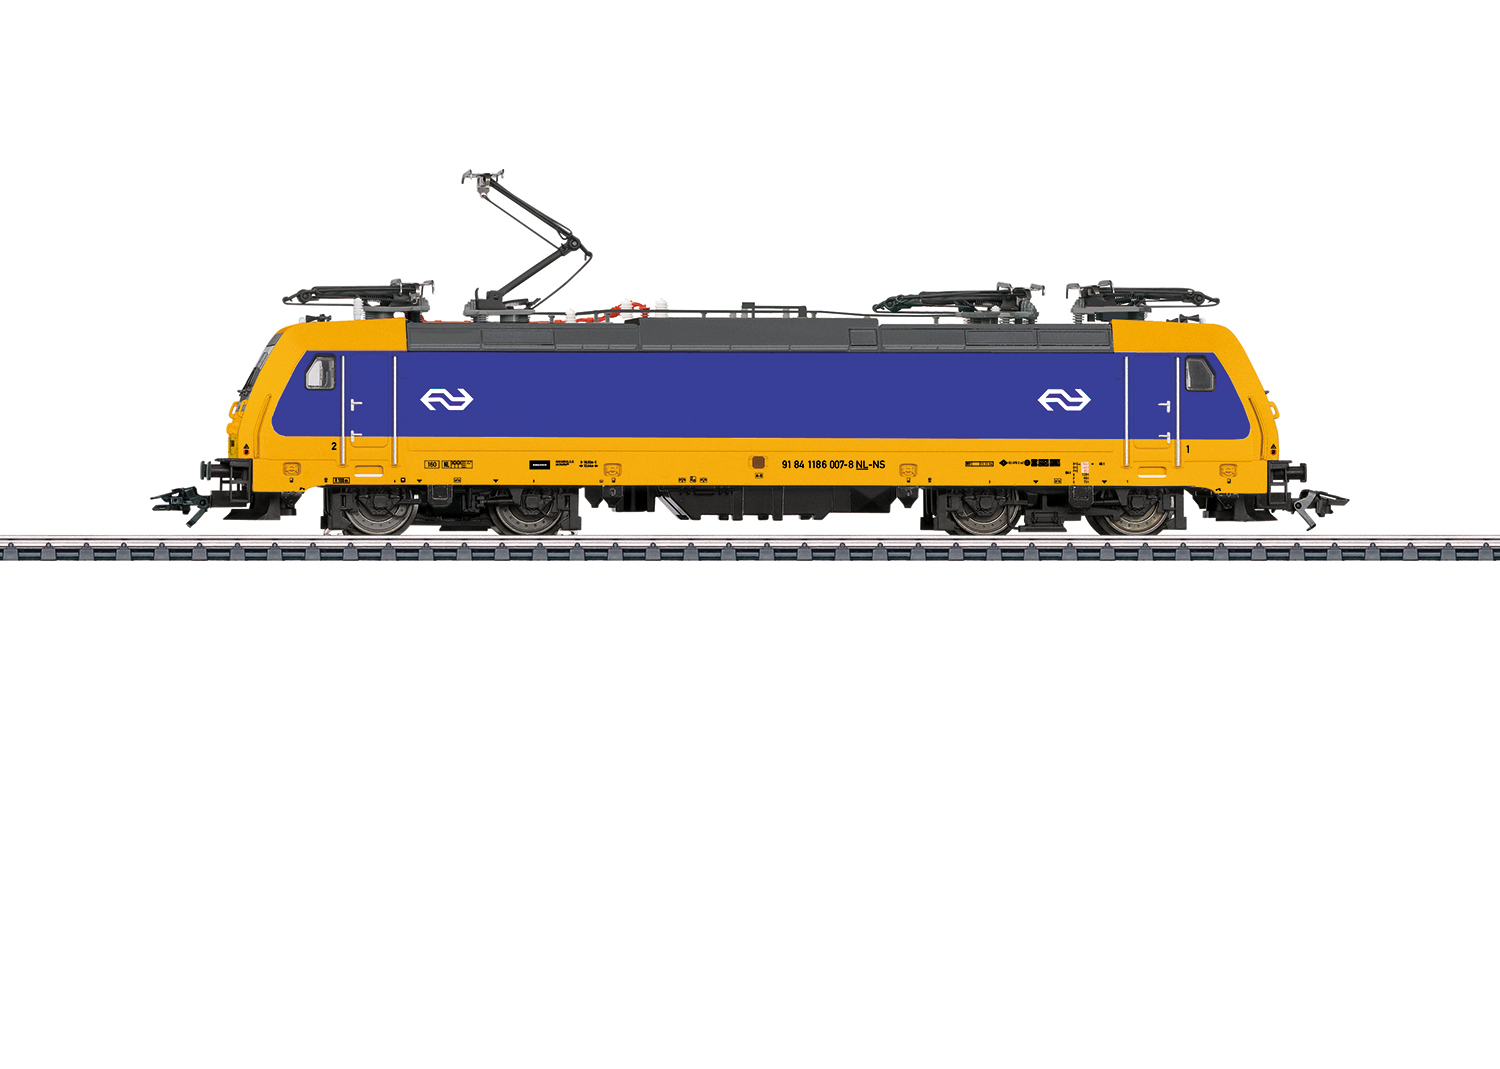 Class E 186 Electric Locomotive